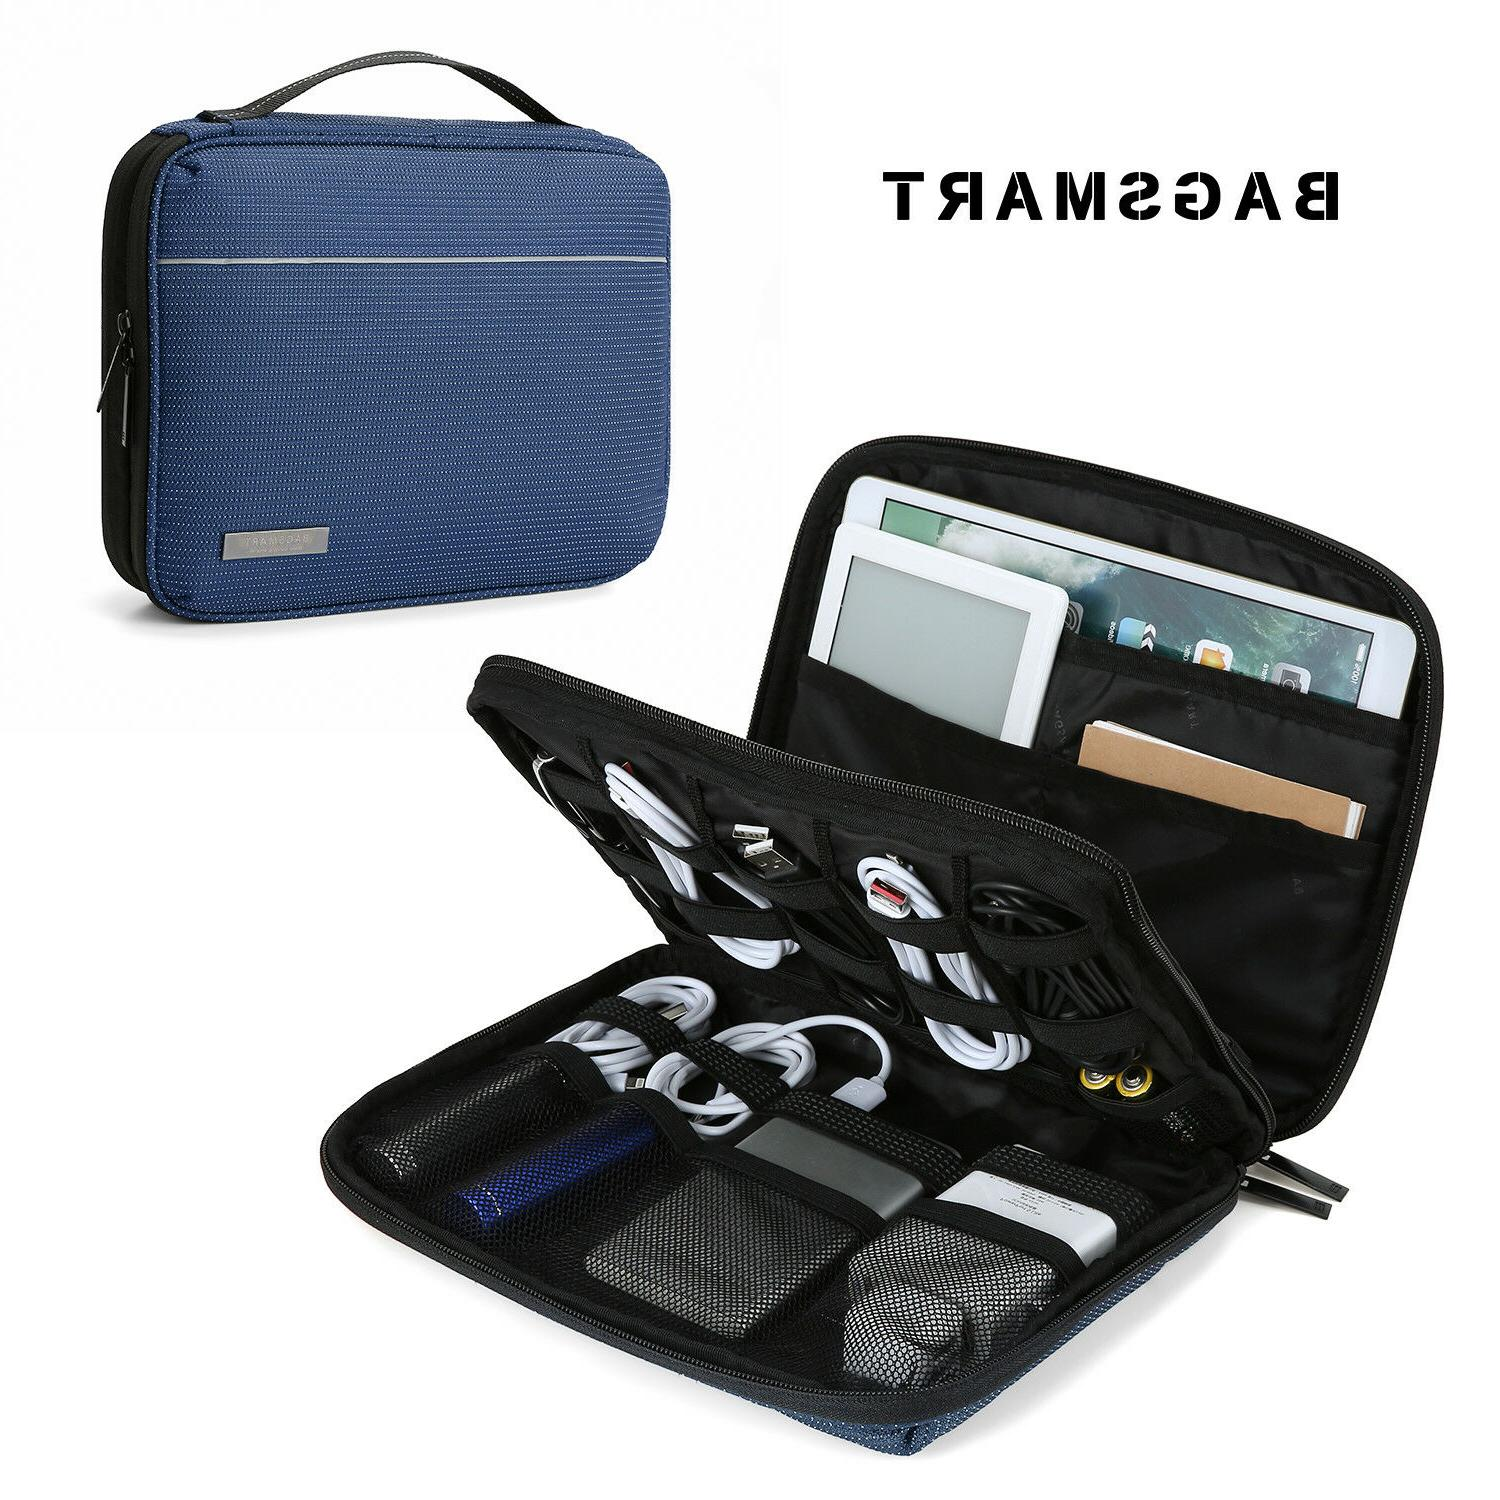 2 layer electronic accessories travel organizer cases